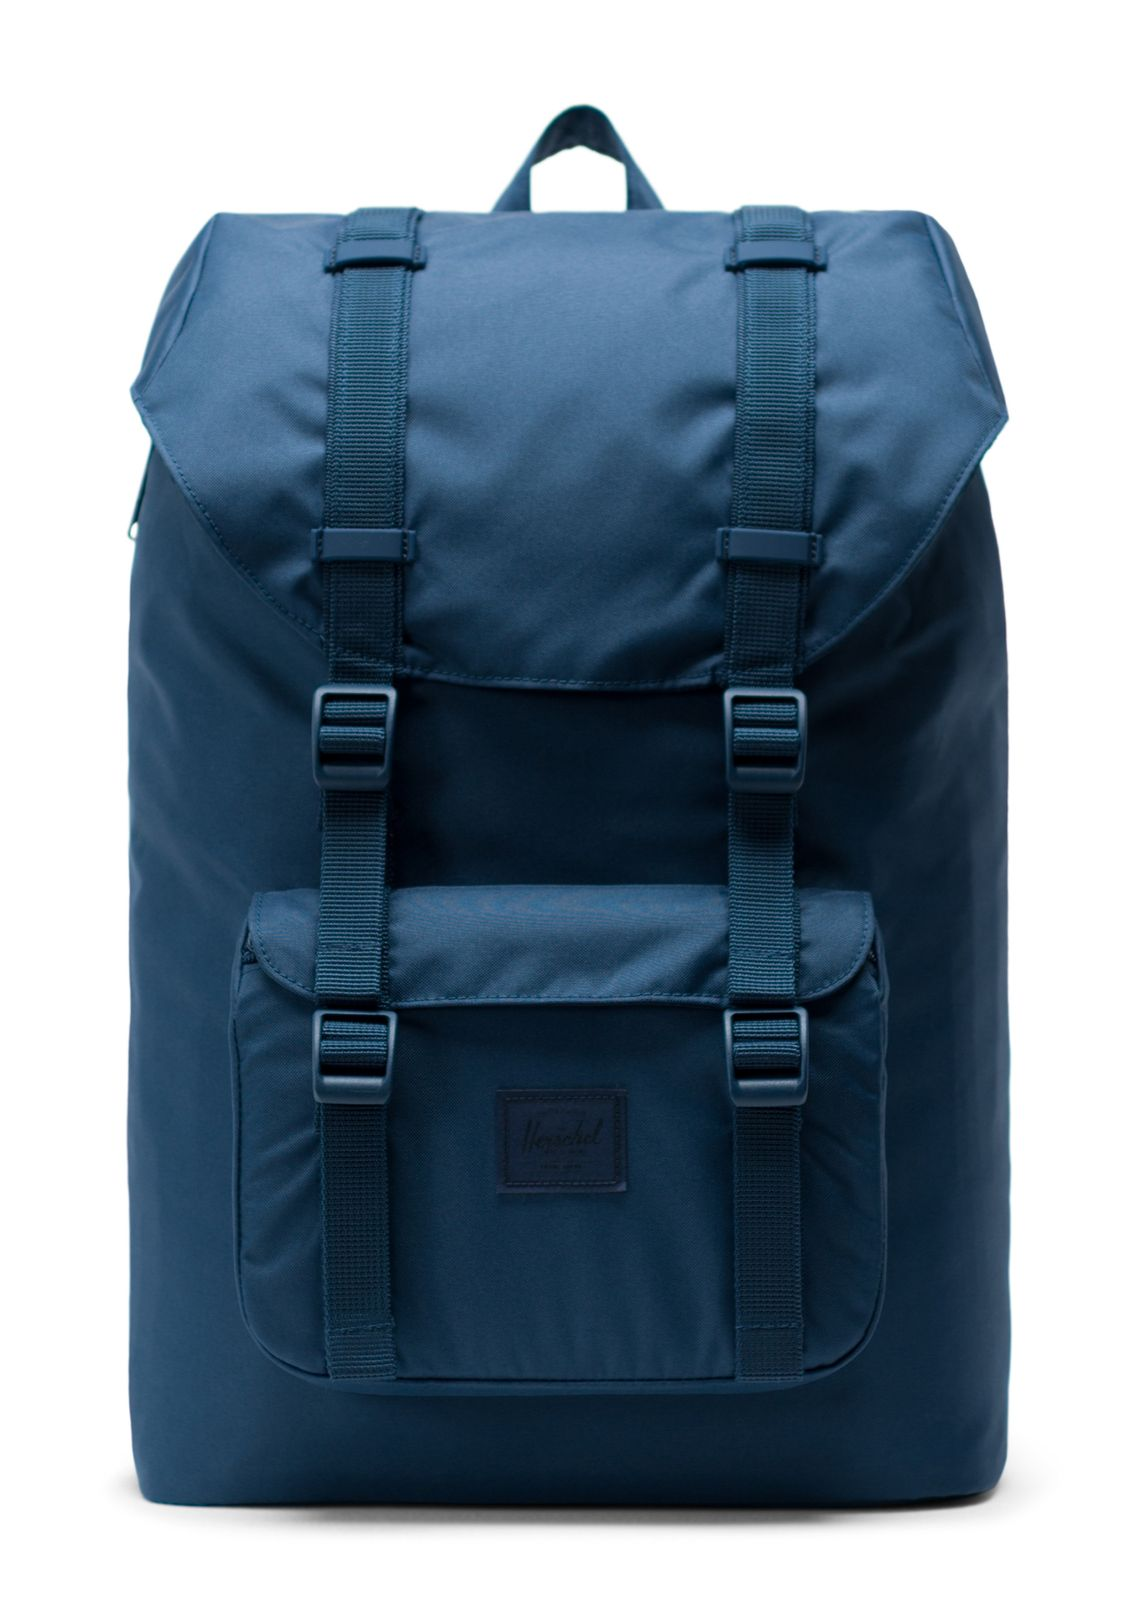 dd9d1f7c092 ... Invoice and sofortüberweisung.deHerschel Little America Mid-Volume  Light Backpack Navy   109